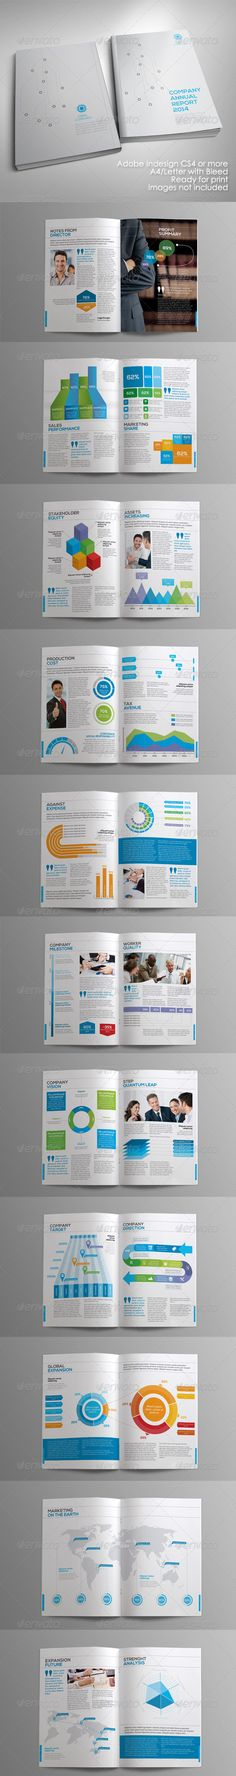 Annual Report Template II on Behance Graphic design Pinterest - annual report template